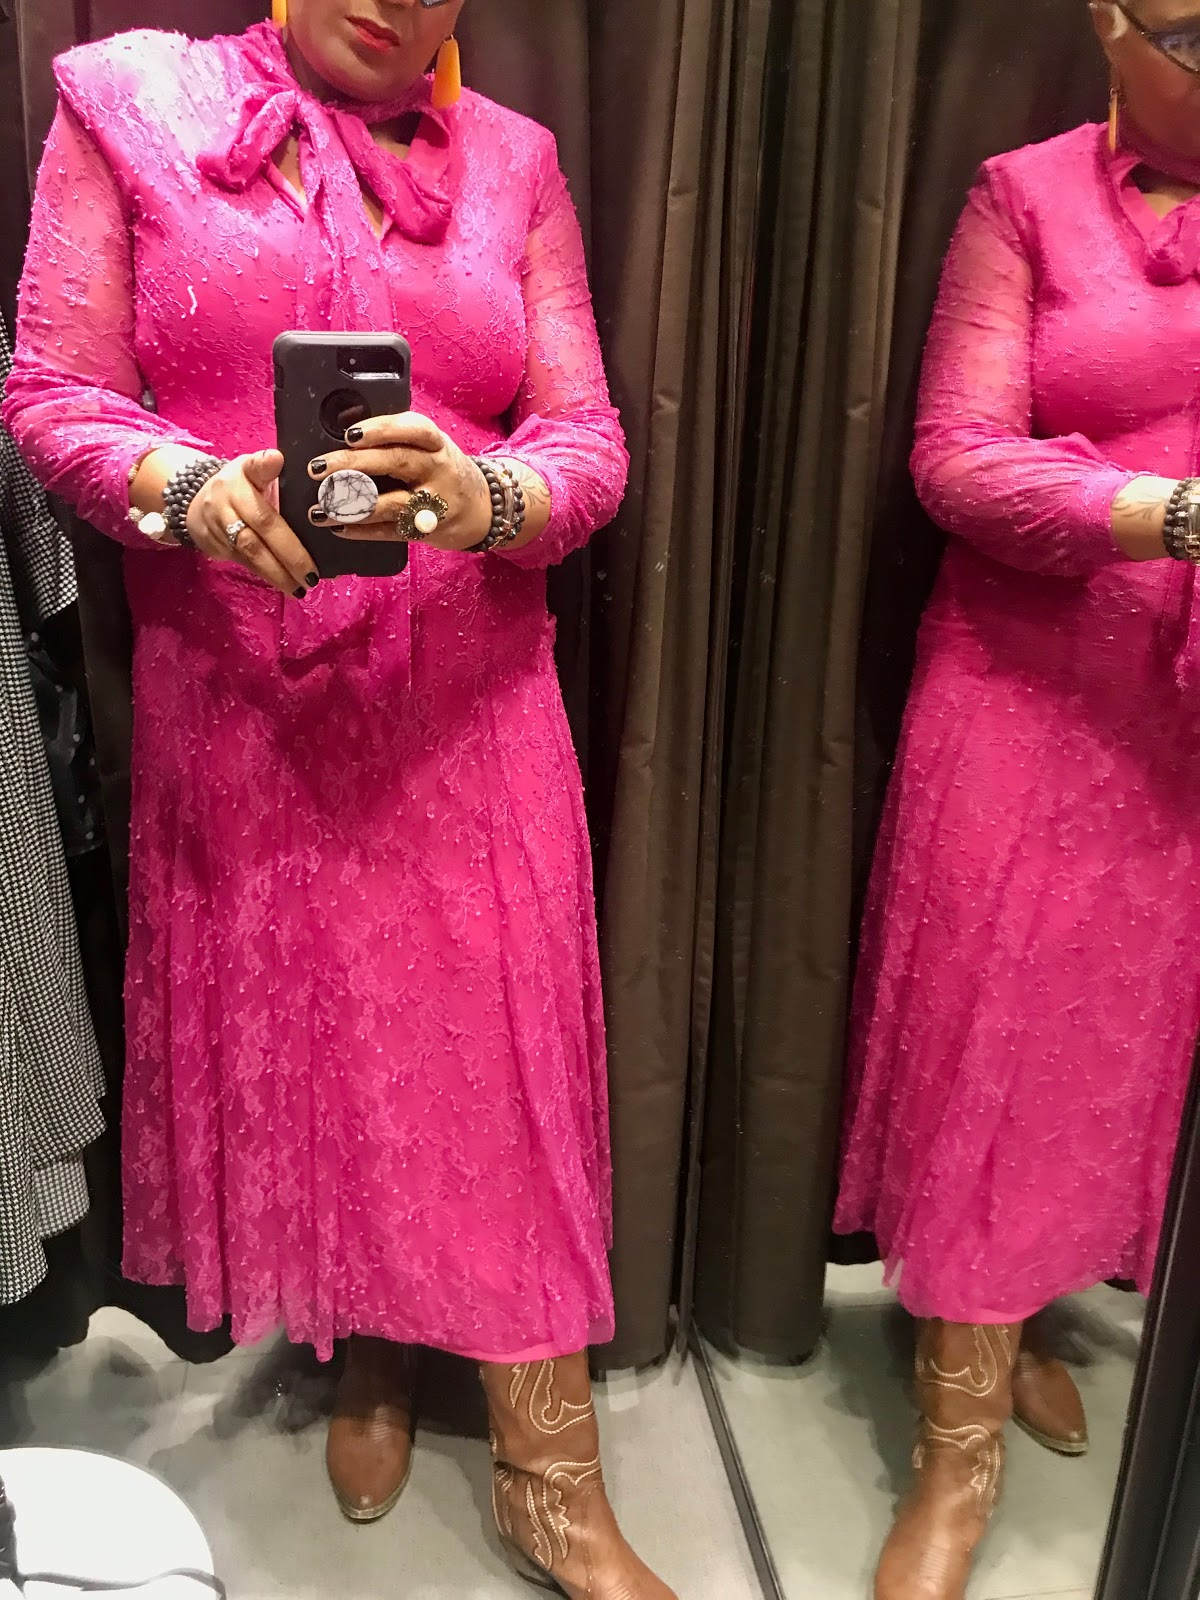 Pink dress try on at Zara store in Dallas texas